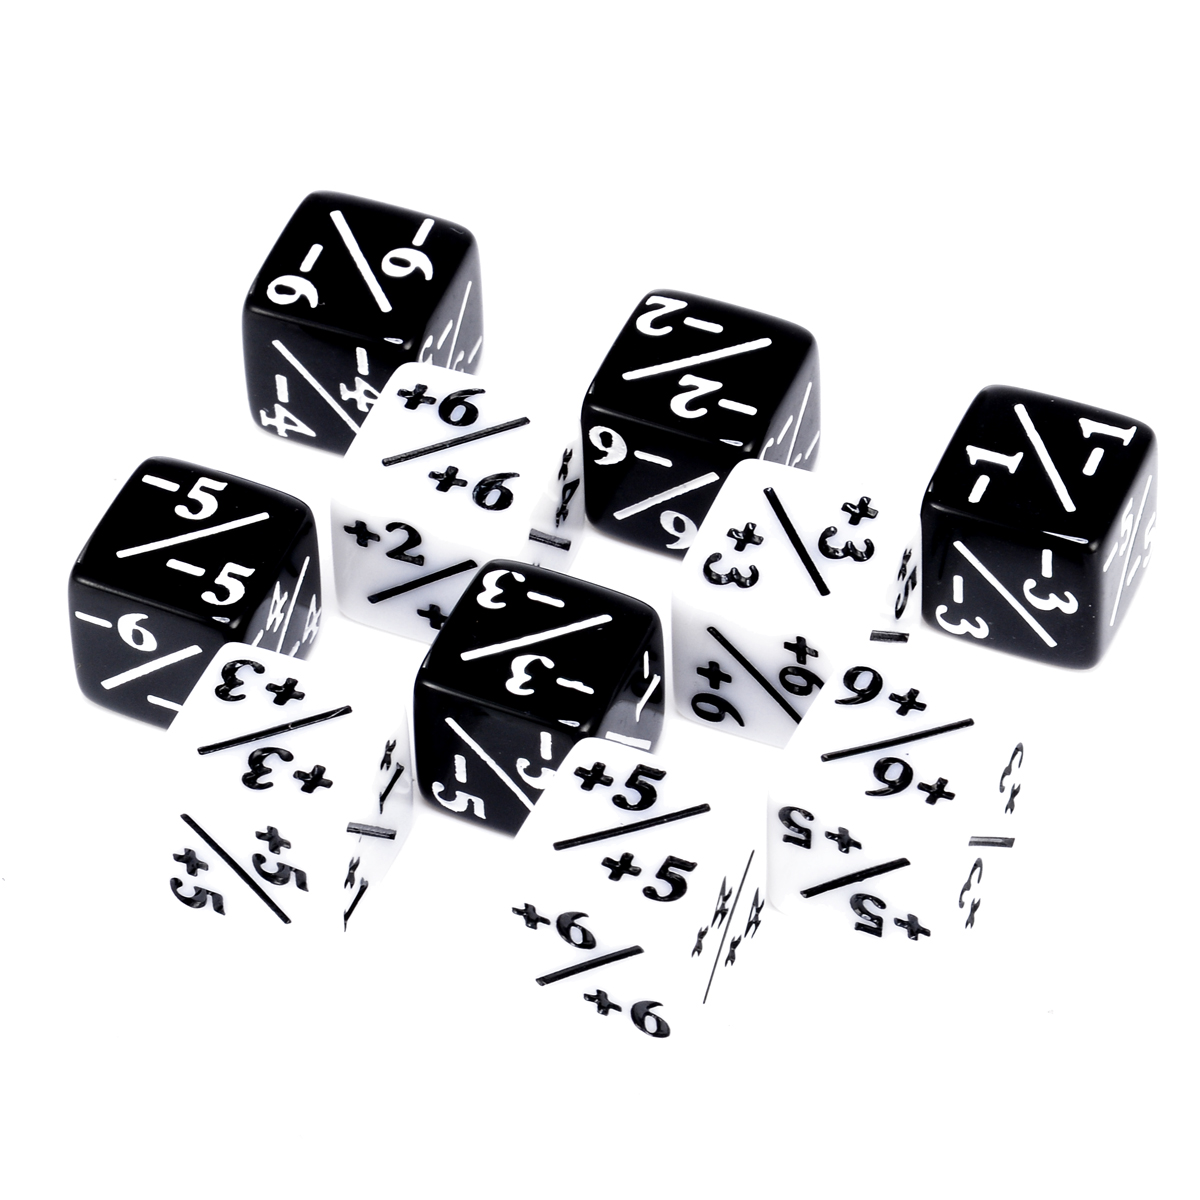 10pcs/set Black White Counters Dice For Magic The Gathering Interesting Gambling Outdoor Party Games Dice Set